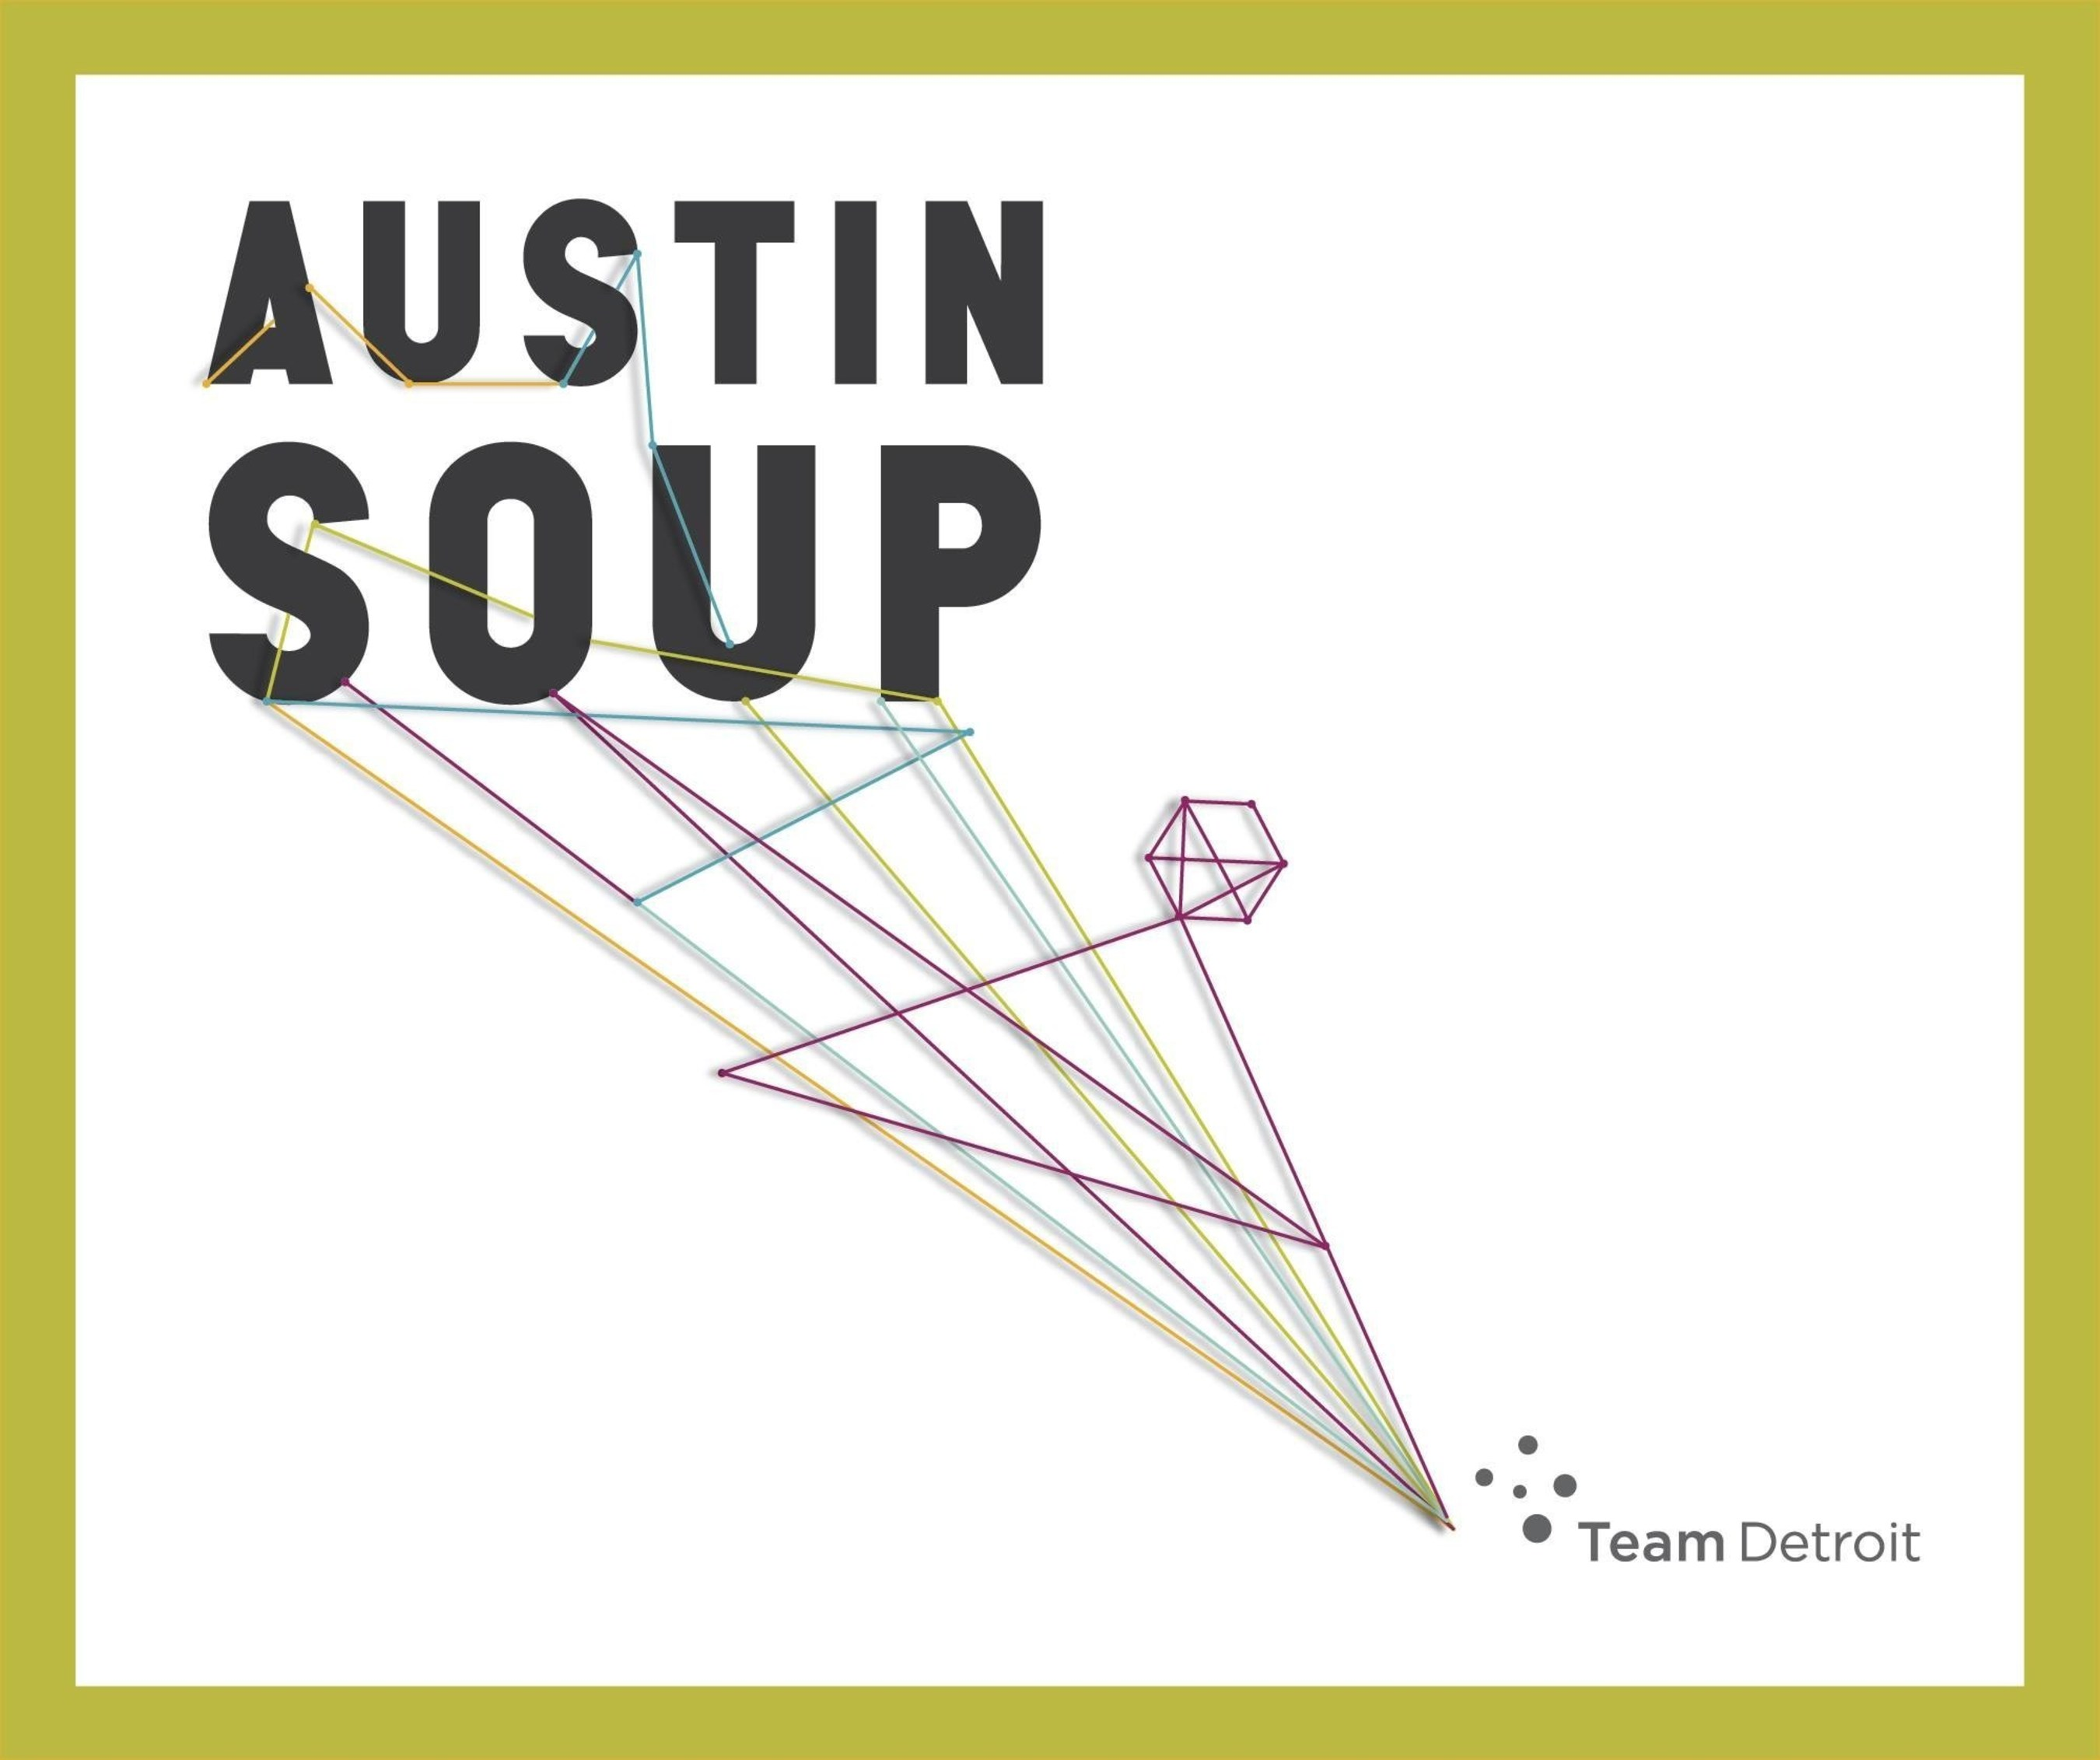 Team Detroit Stirs Up Creativity During SXSW with Crowd Funding Pitch Competition at First Ever 'Austin SOUP'